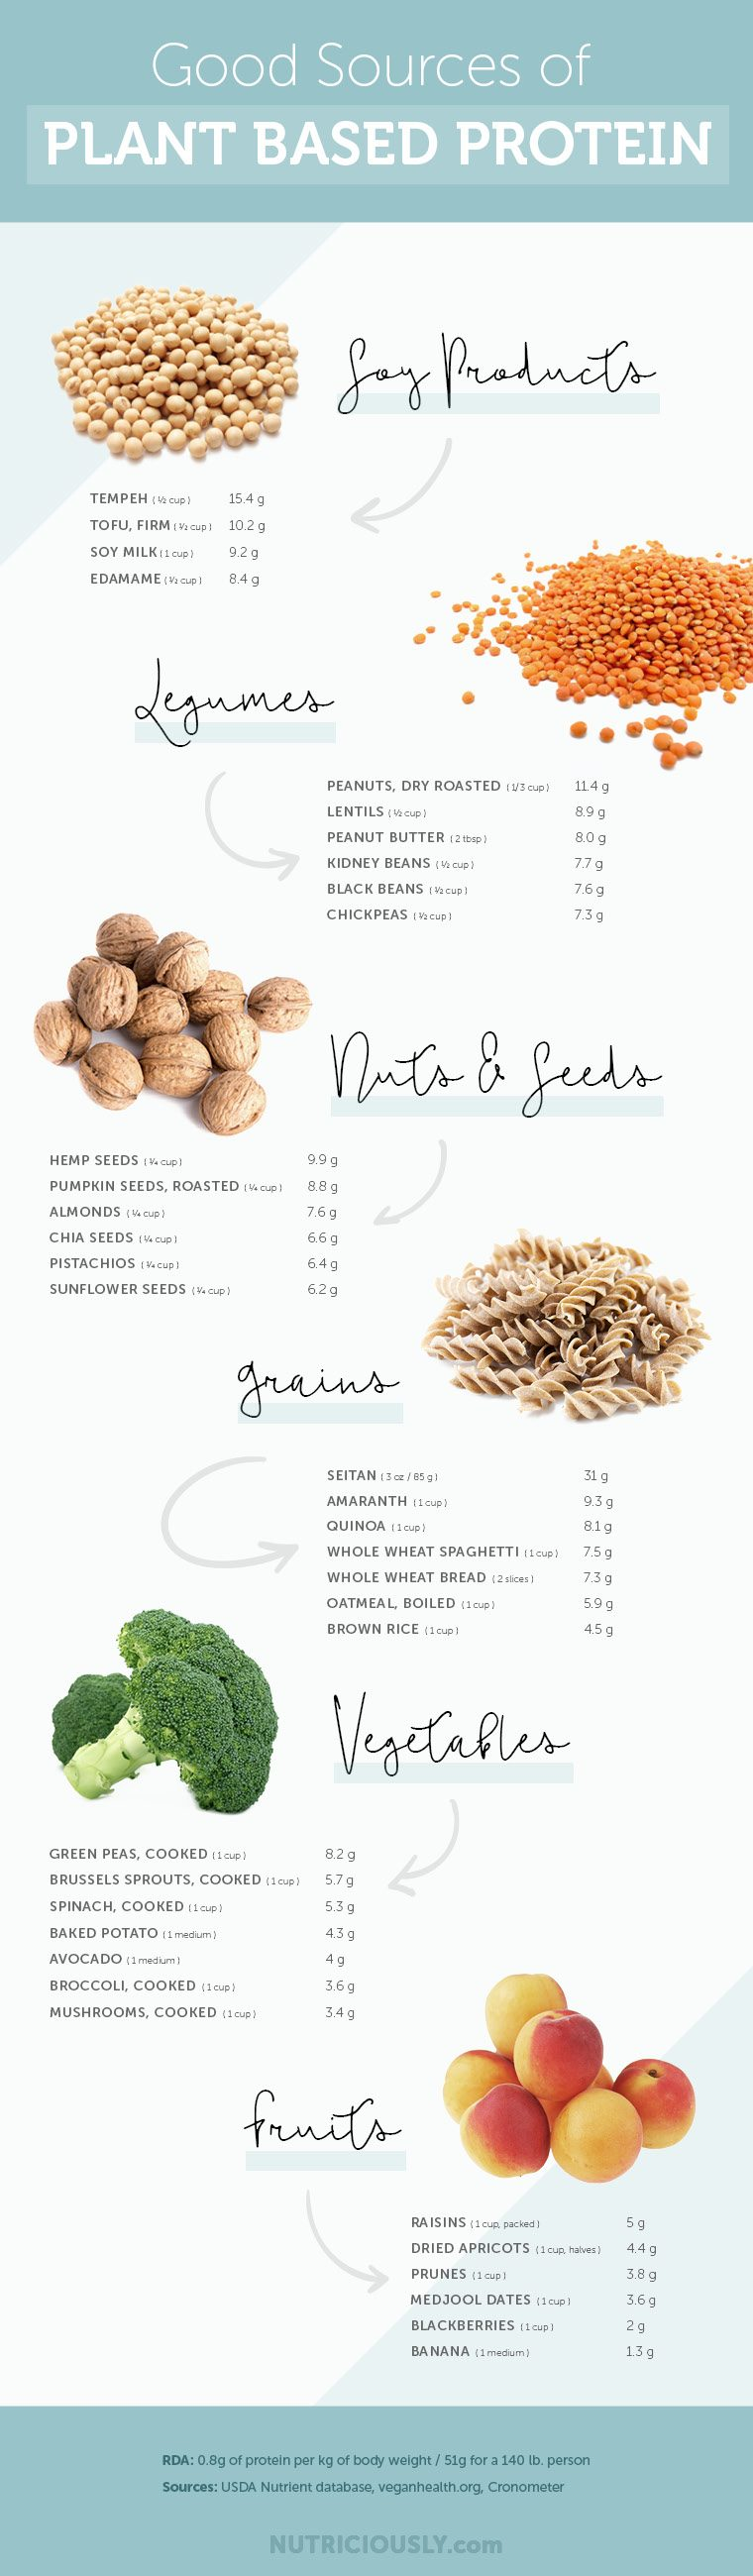 good sources of plant based protein infographic